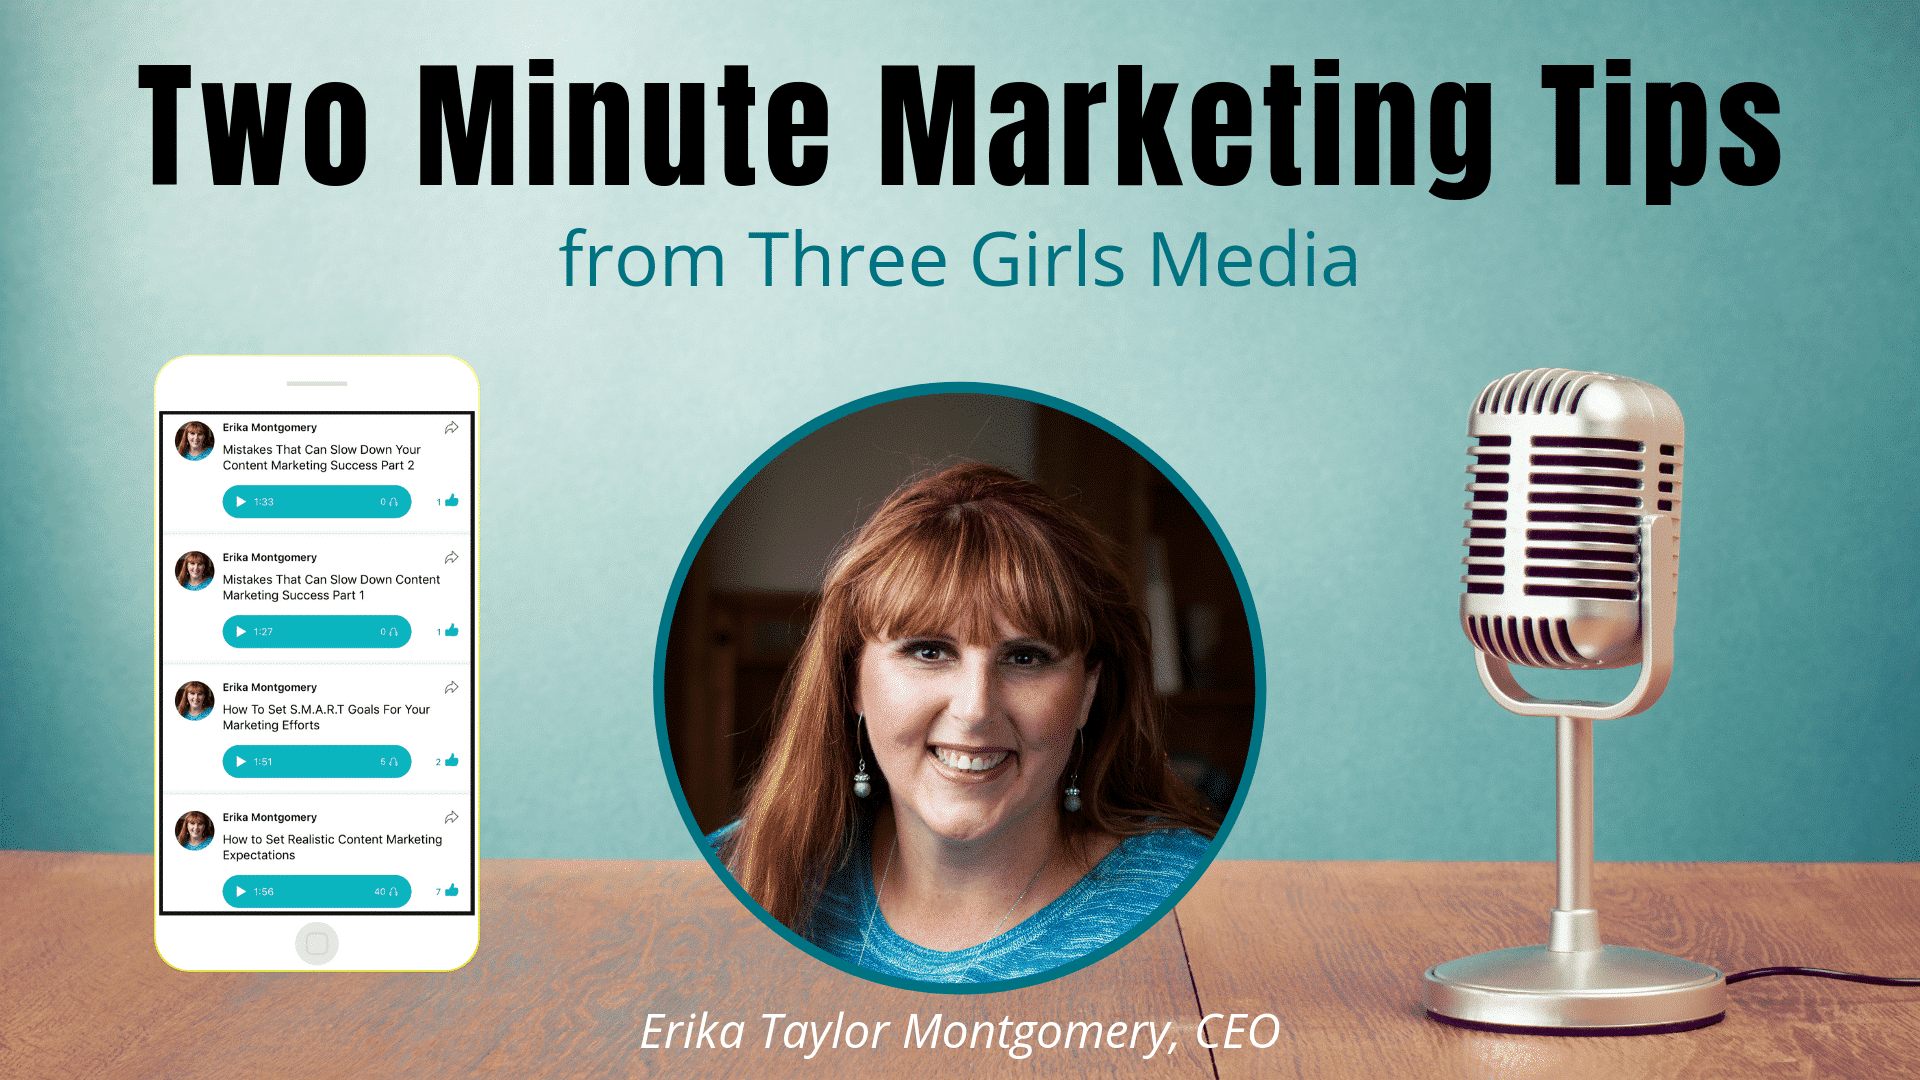 Two Minute Marketing Tips: 5 Easy to Use Content Marketing Tools